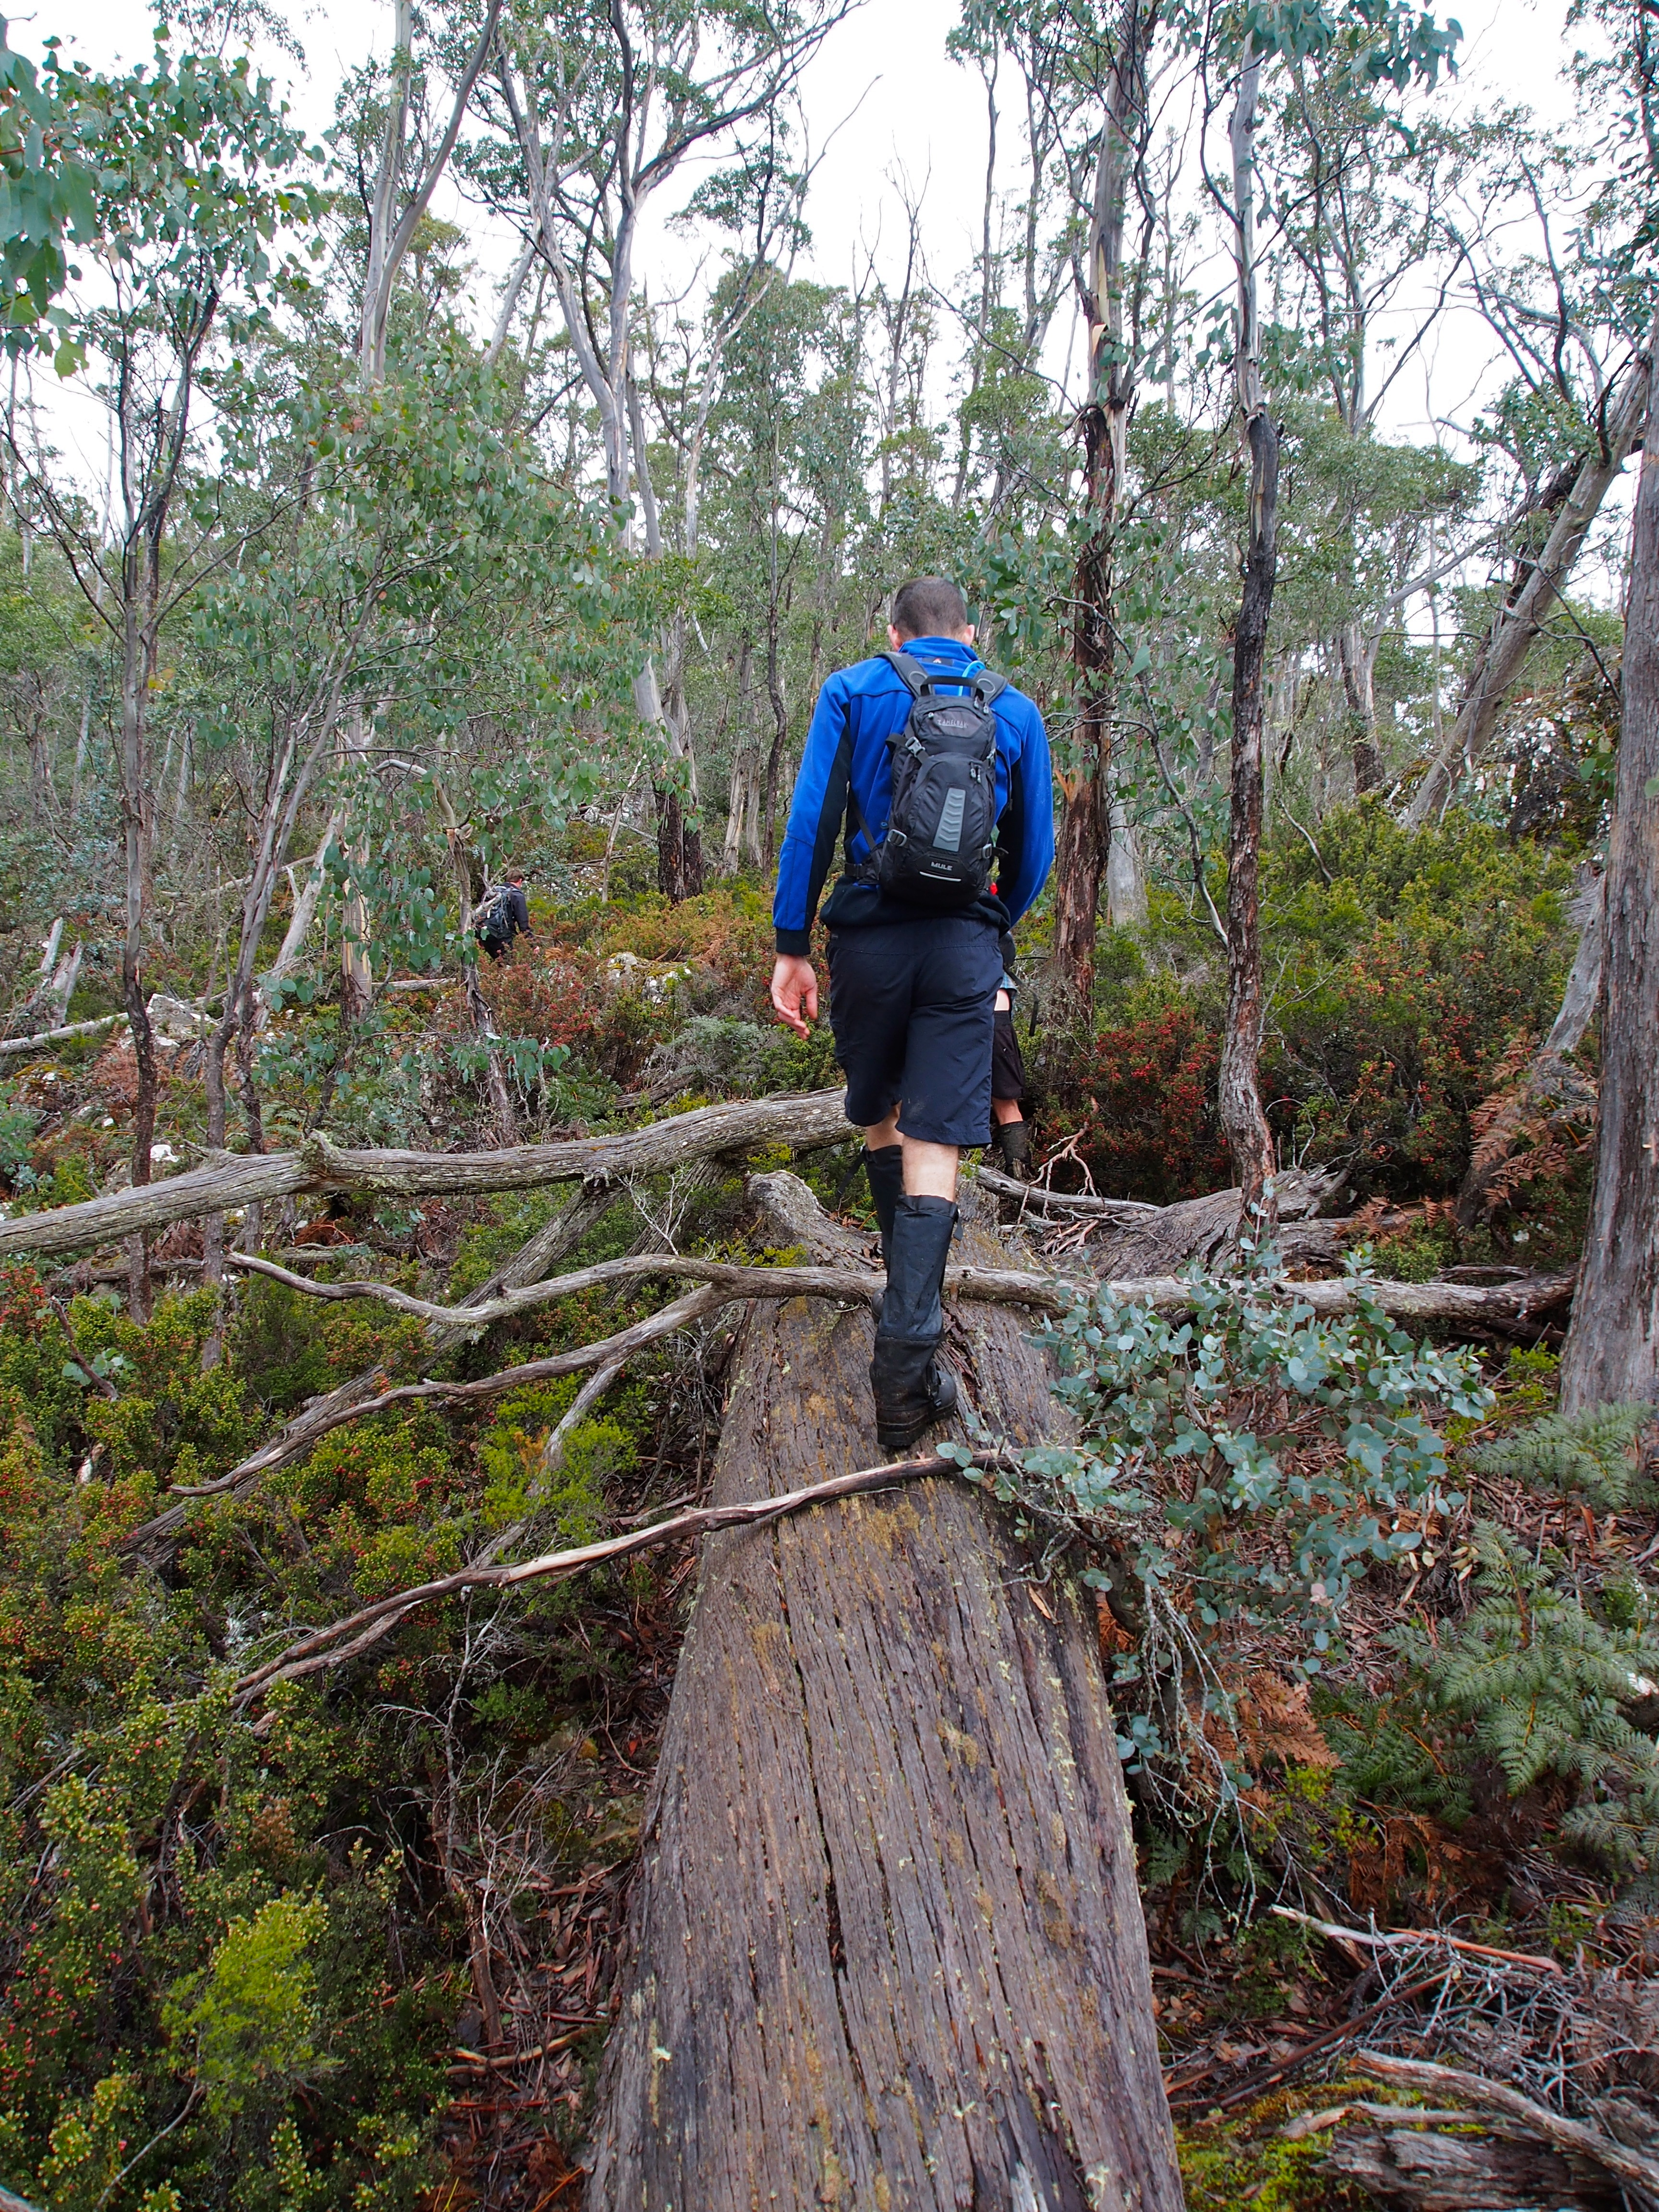 A few slippery tree trunks to walk along. Mike shows how it's done!